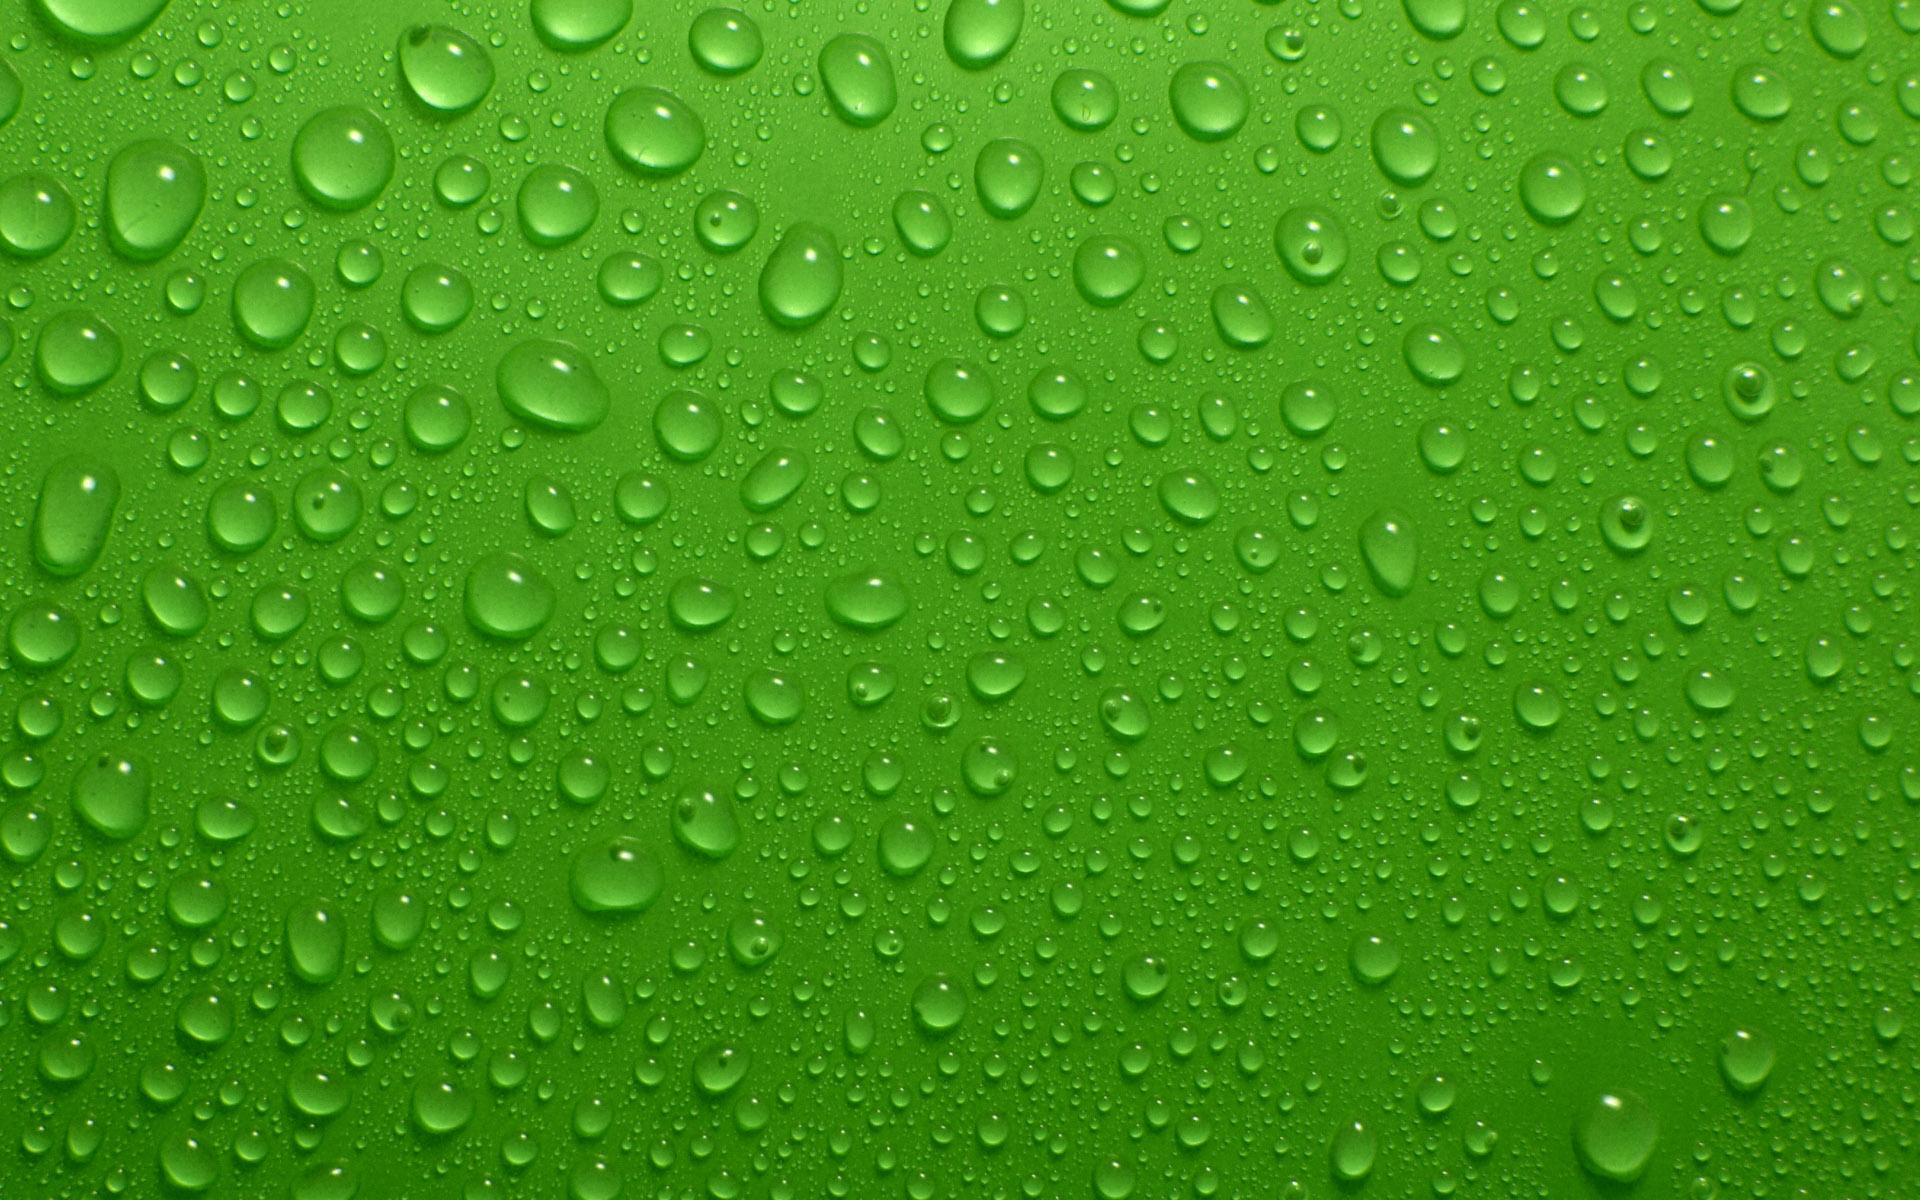 Green water drops HQ Wallpaper